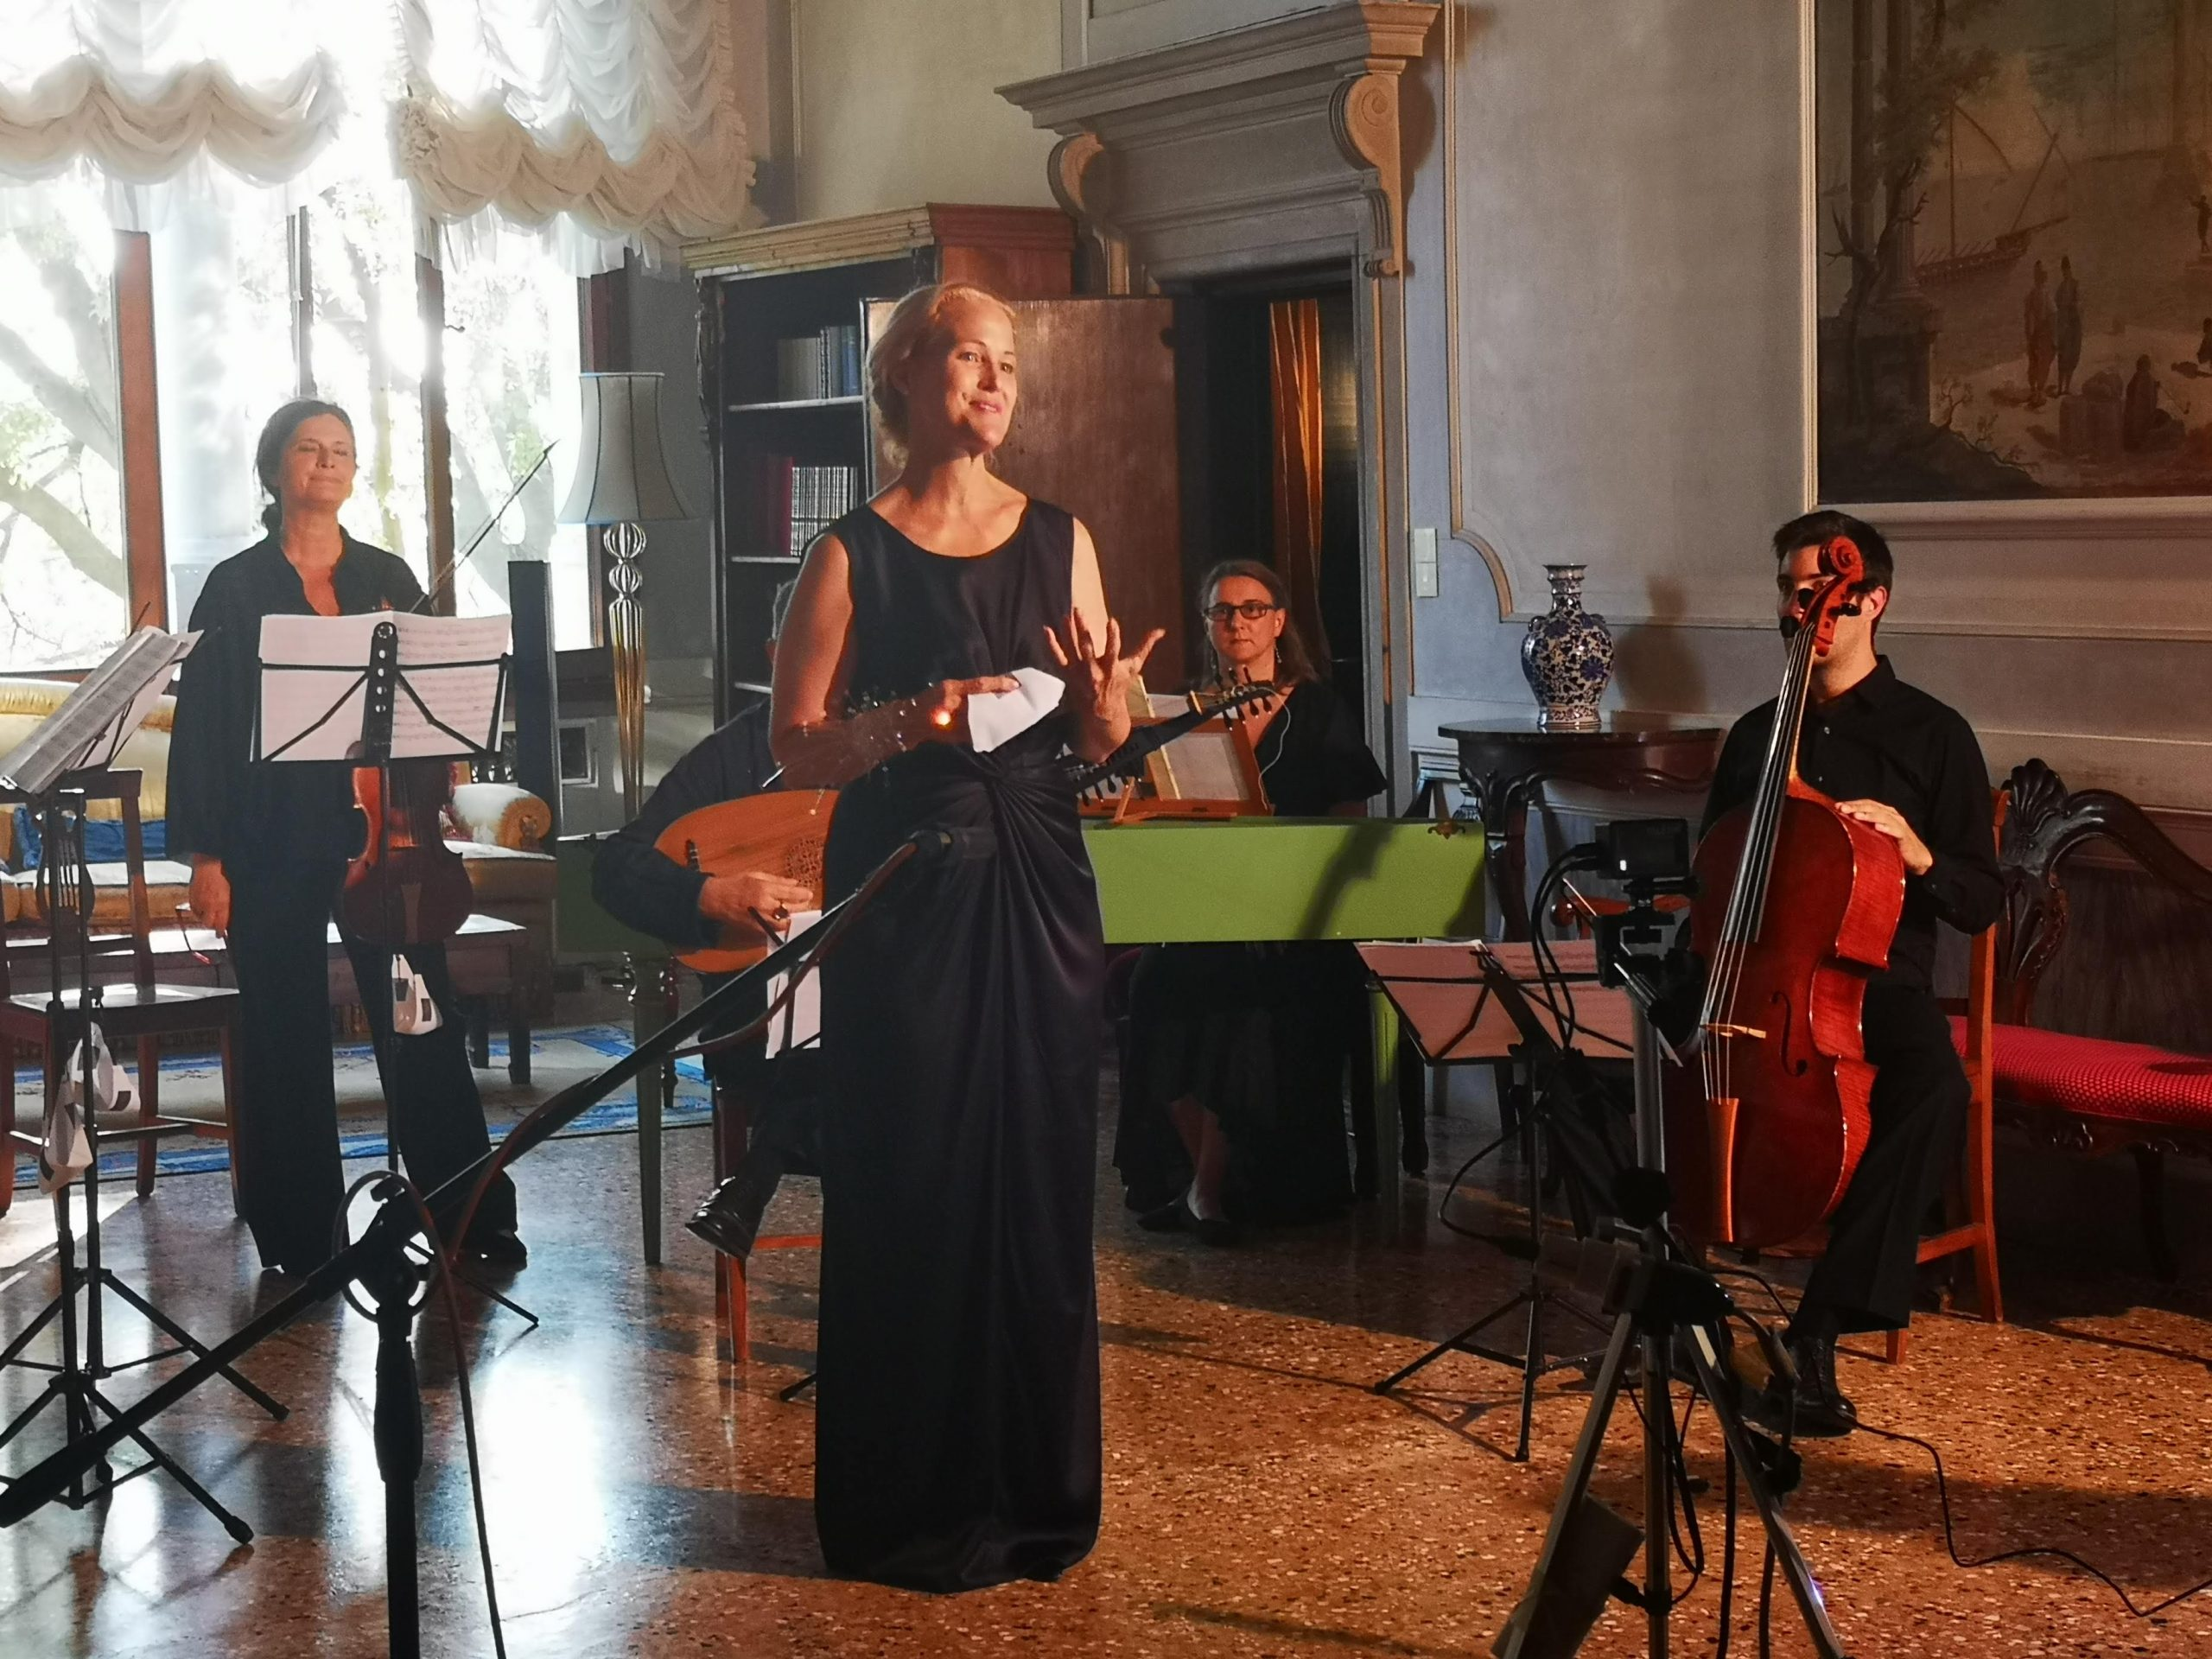 venice music project anima veneziana